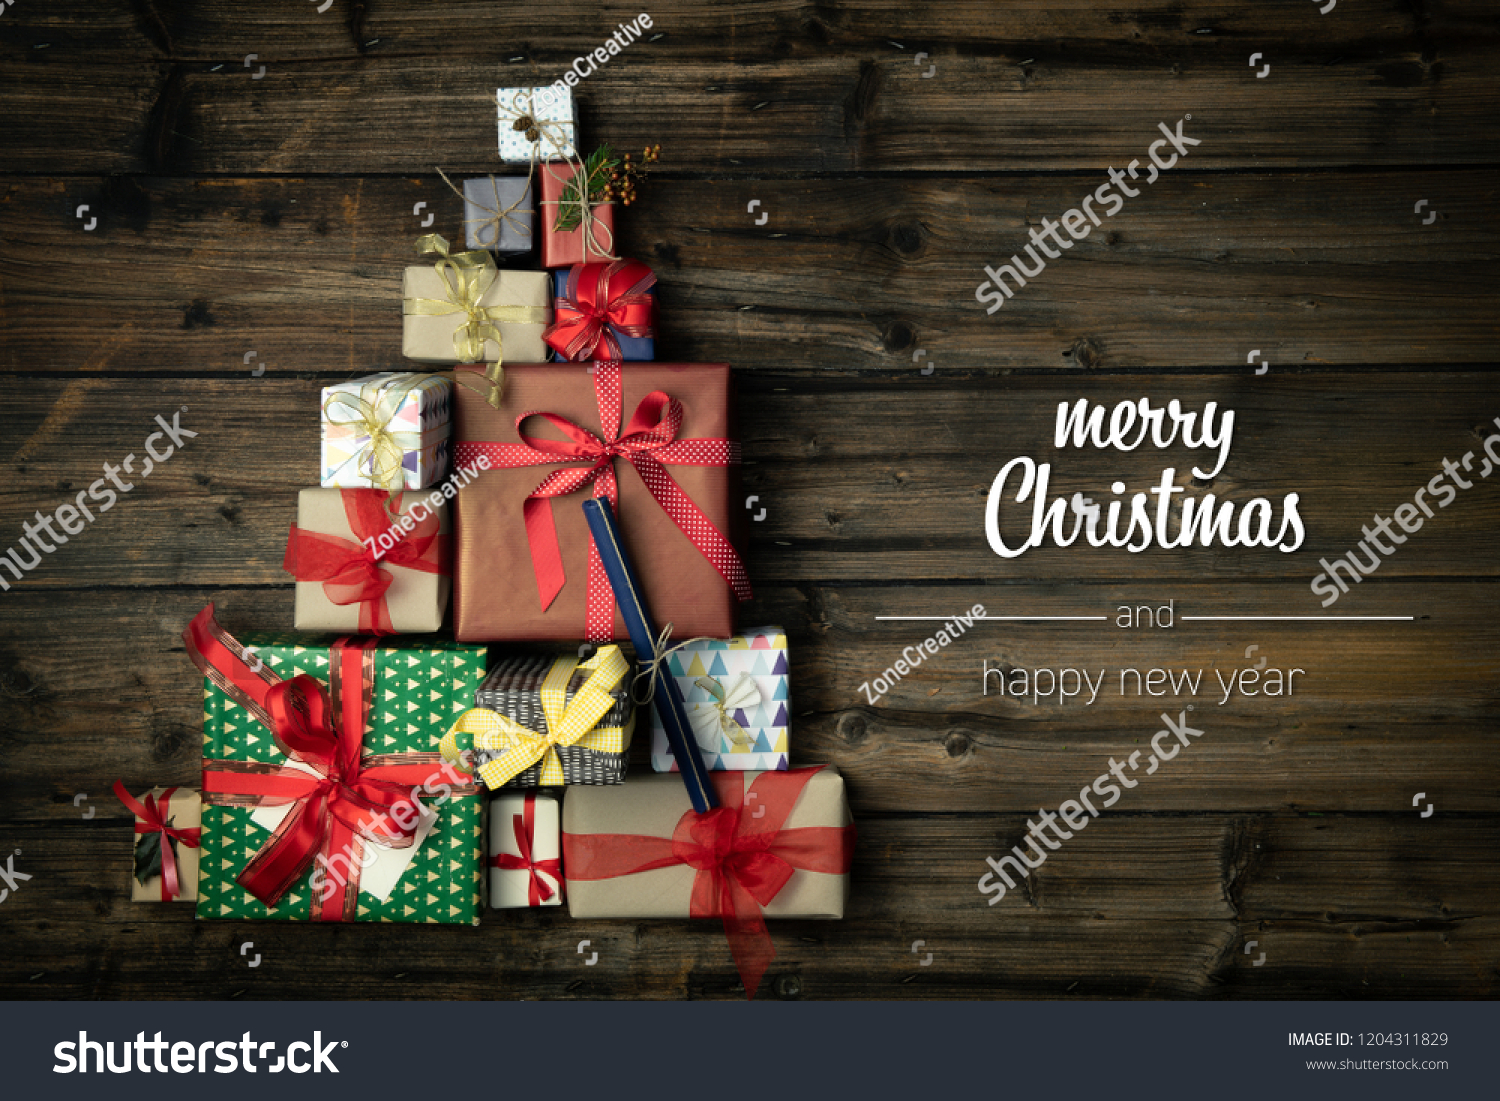 merry christmas and happy new year greetings in vertical top view dark vintage wood with christmas